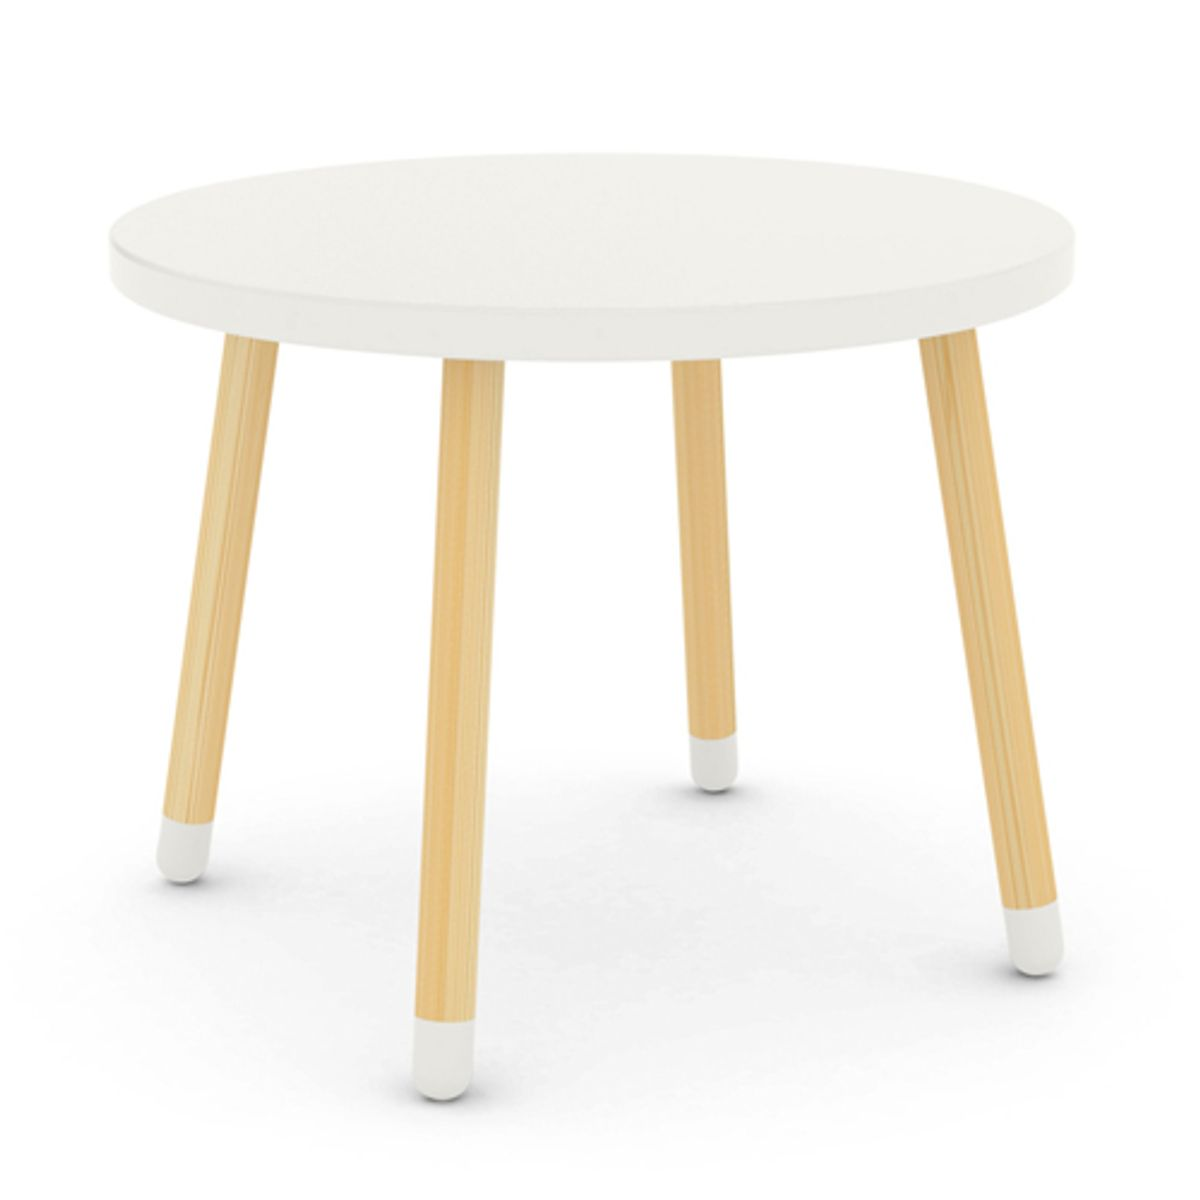 Table Ronde Bois Blanc Table Ronde En Bois Pour Enfant Flexa Play Blanc Decoclico